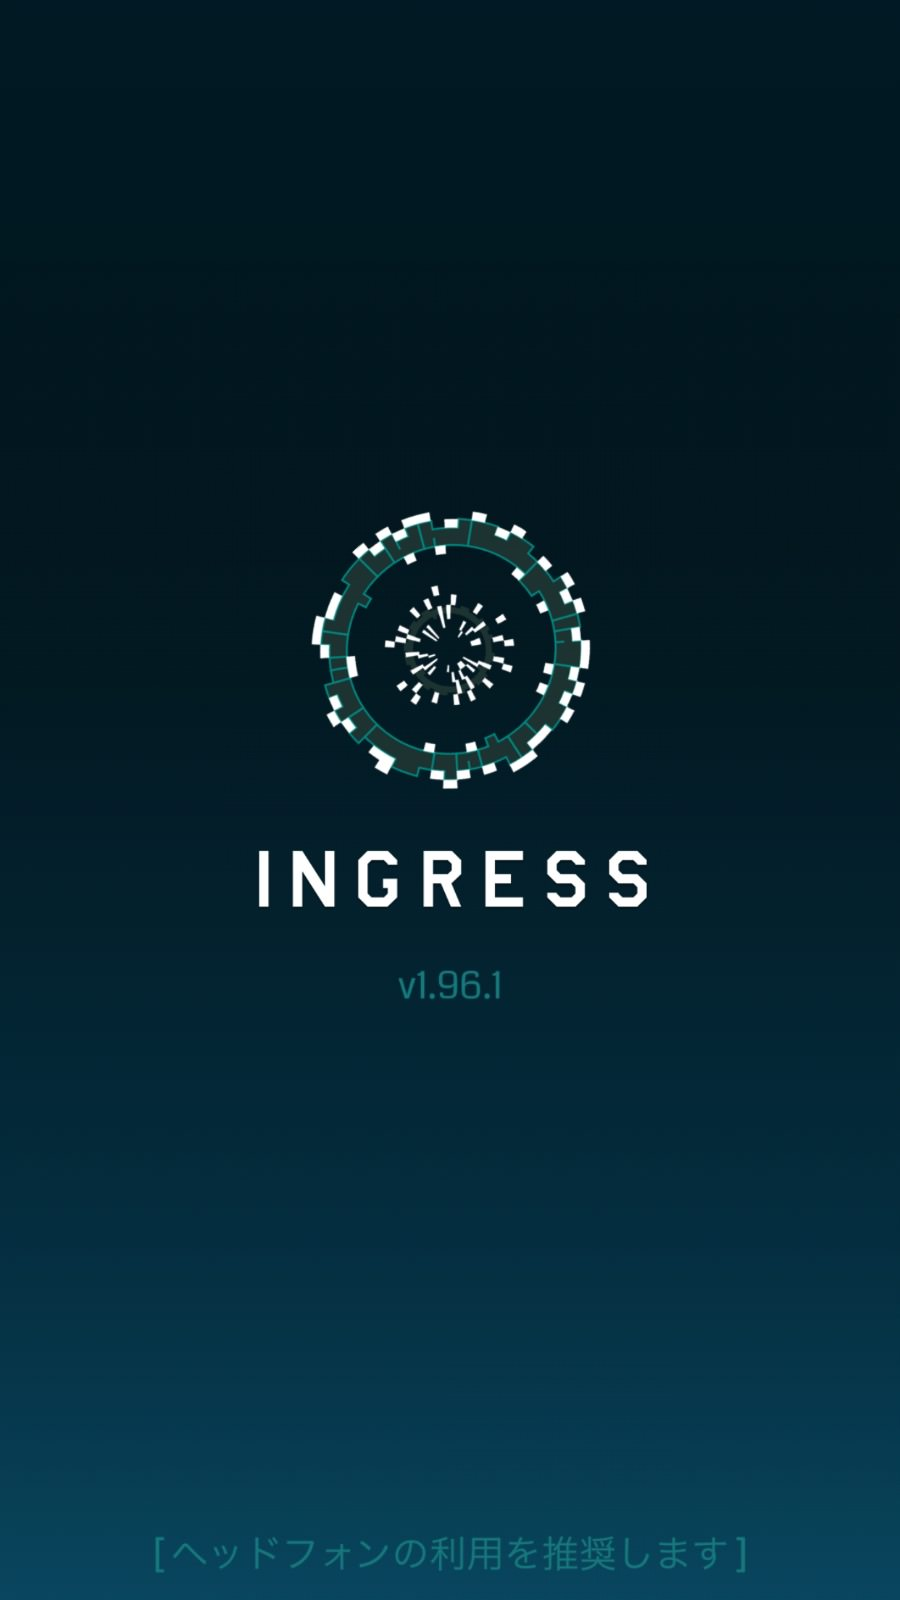 Ingress 2485